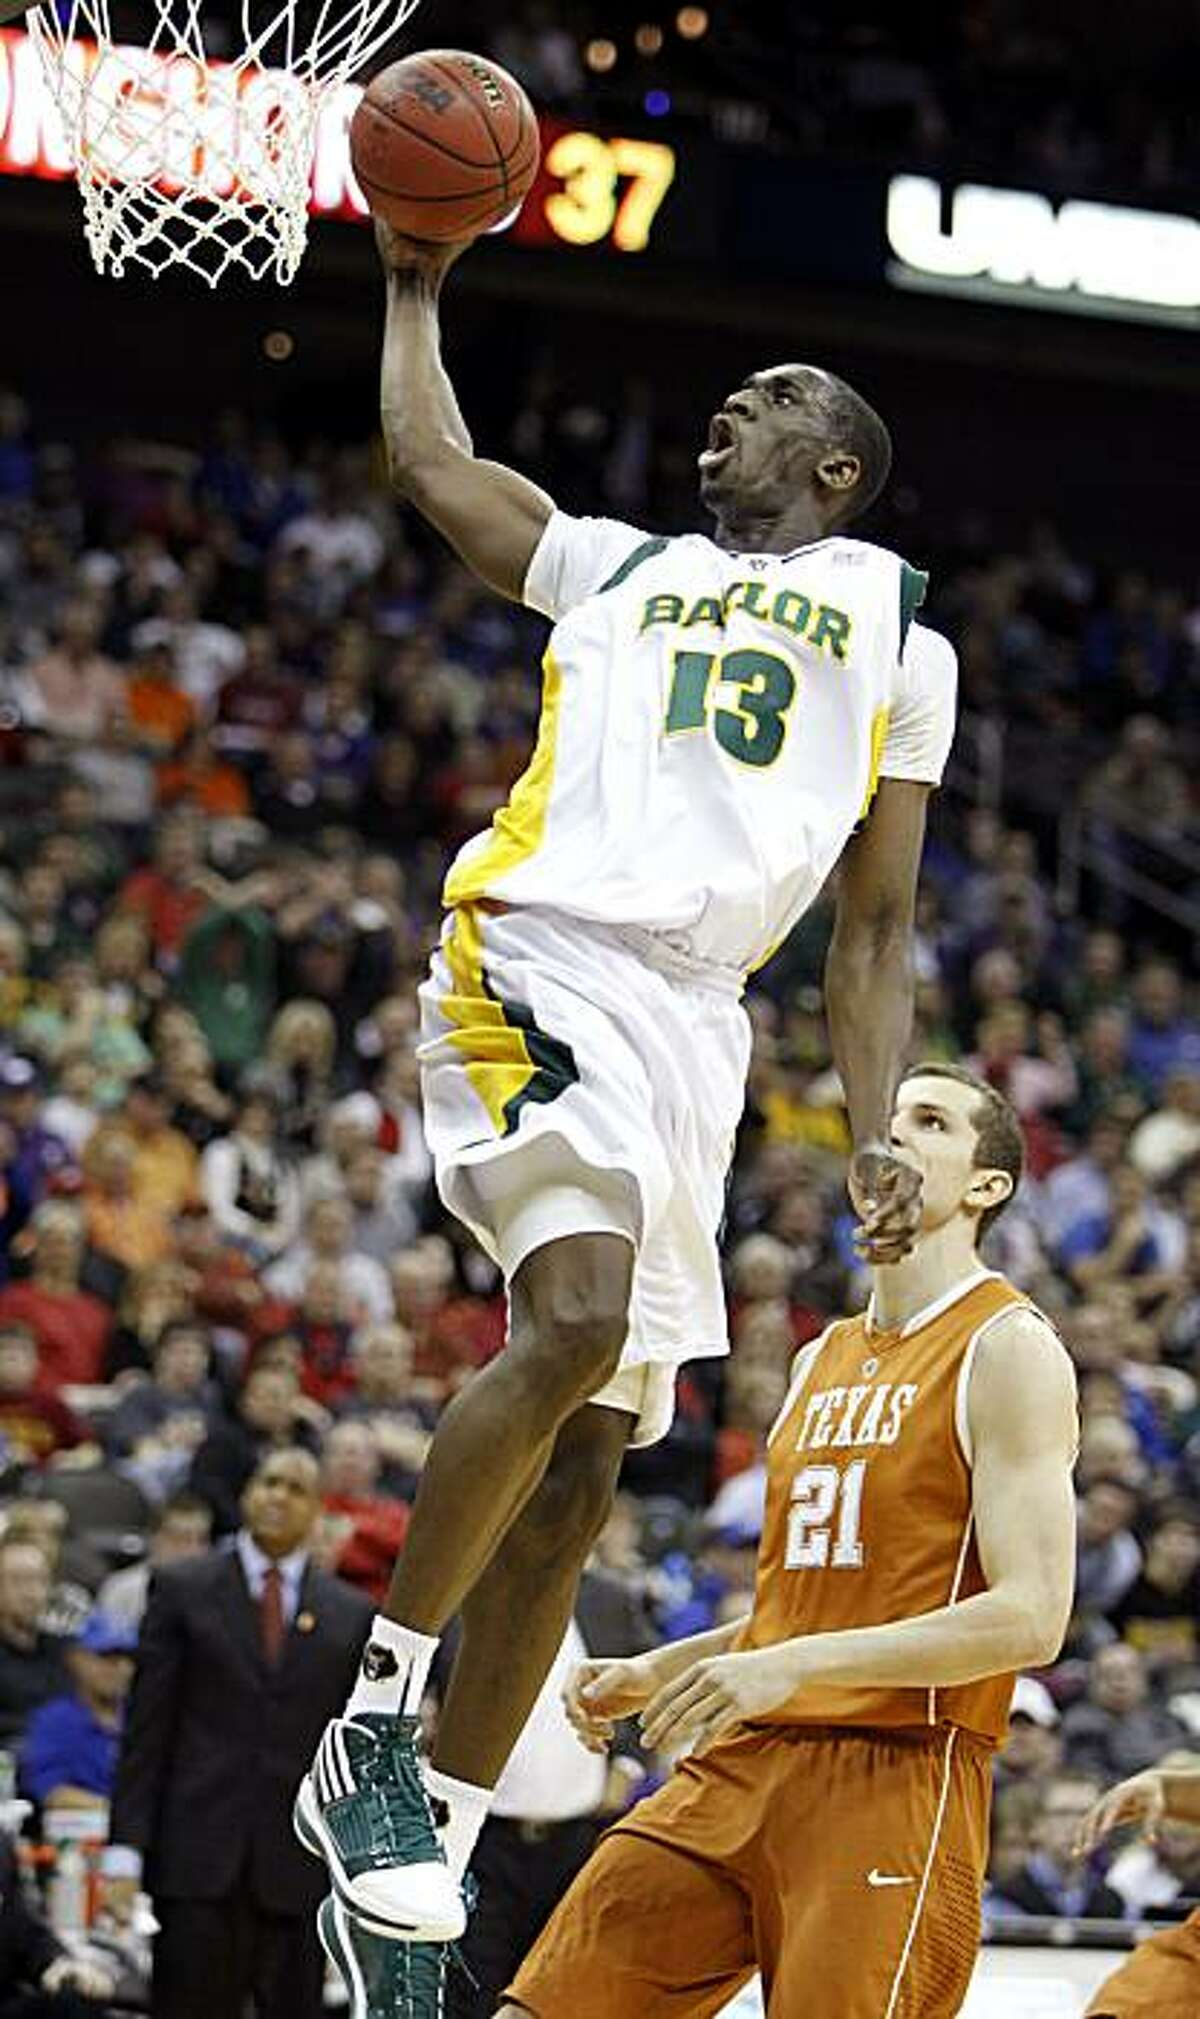 This March 11 photo shows Baylor center Ekpe Udoh (13) shooting over Texas center Matt Hill during the first half of an NCAA college basketball game at the Big 12 Conference men's tournament in Kansas City, Mo.